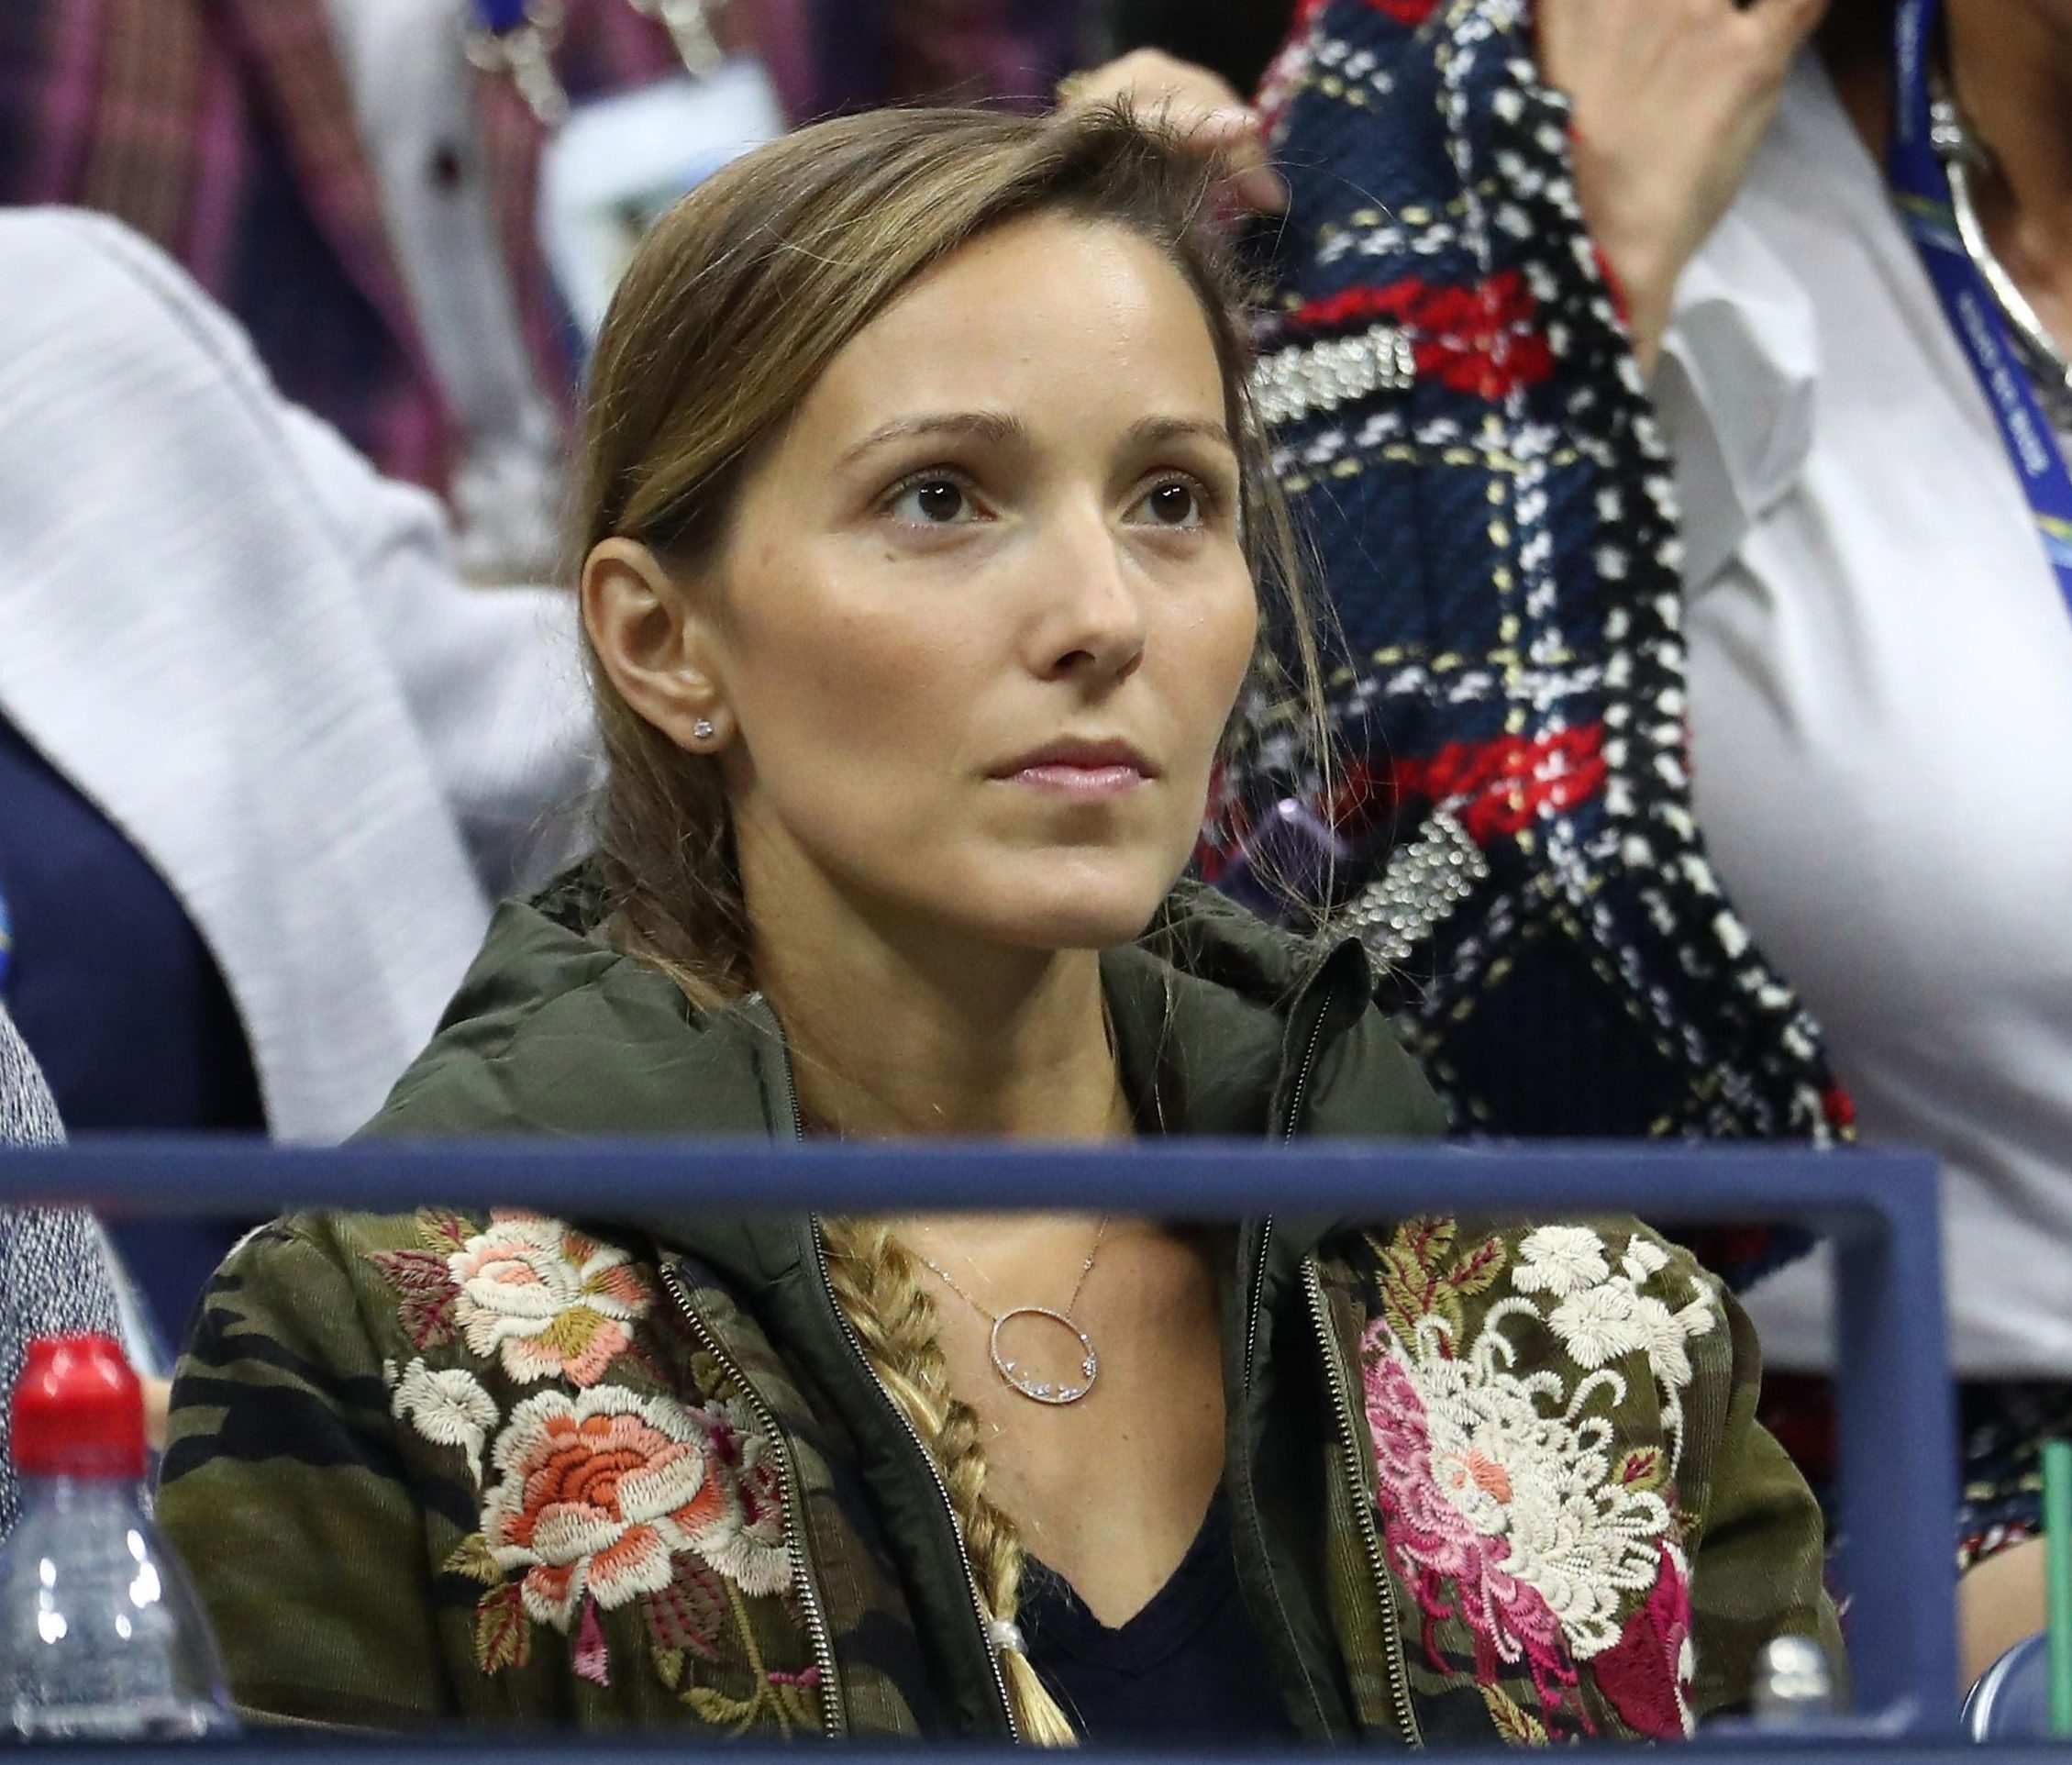 Novak Djokovic's wife Jelena anxiously watches on from the stands at US Open final